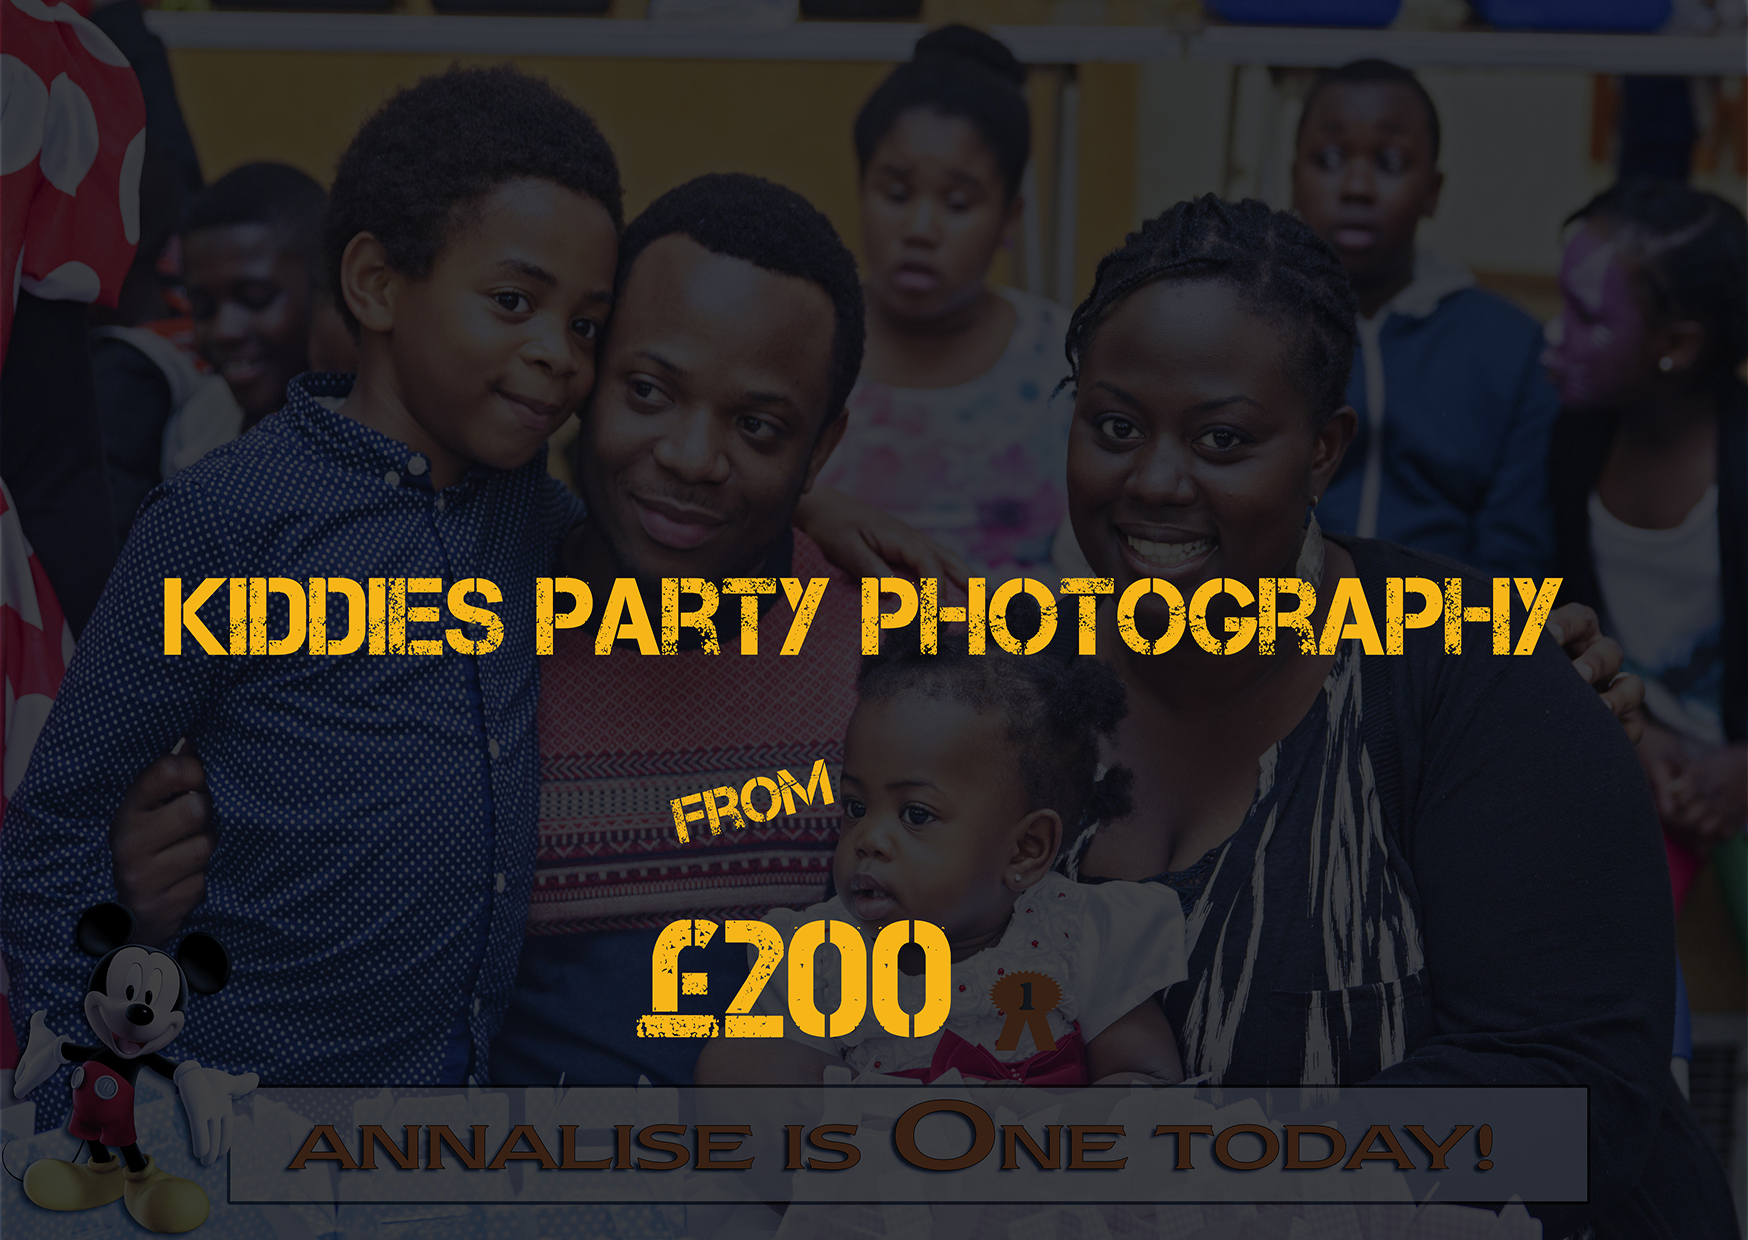 Kiddies Party Photography